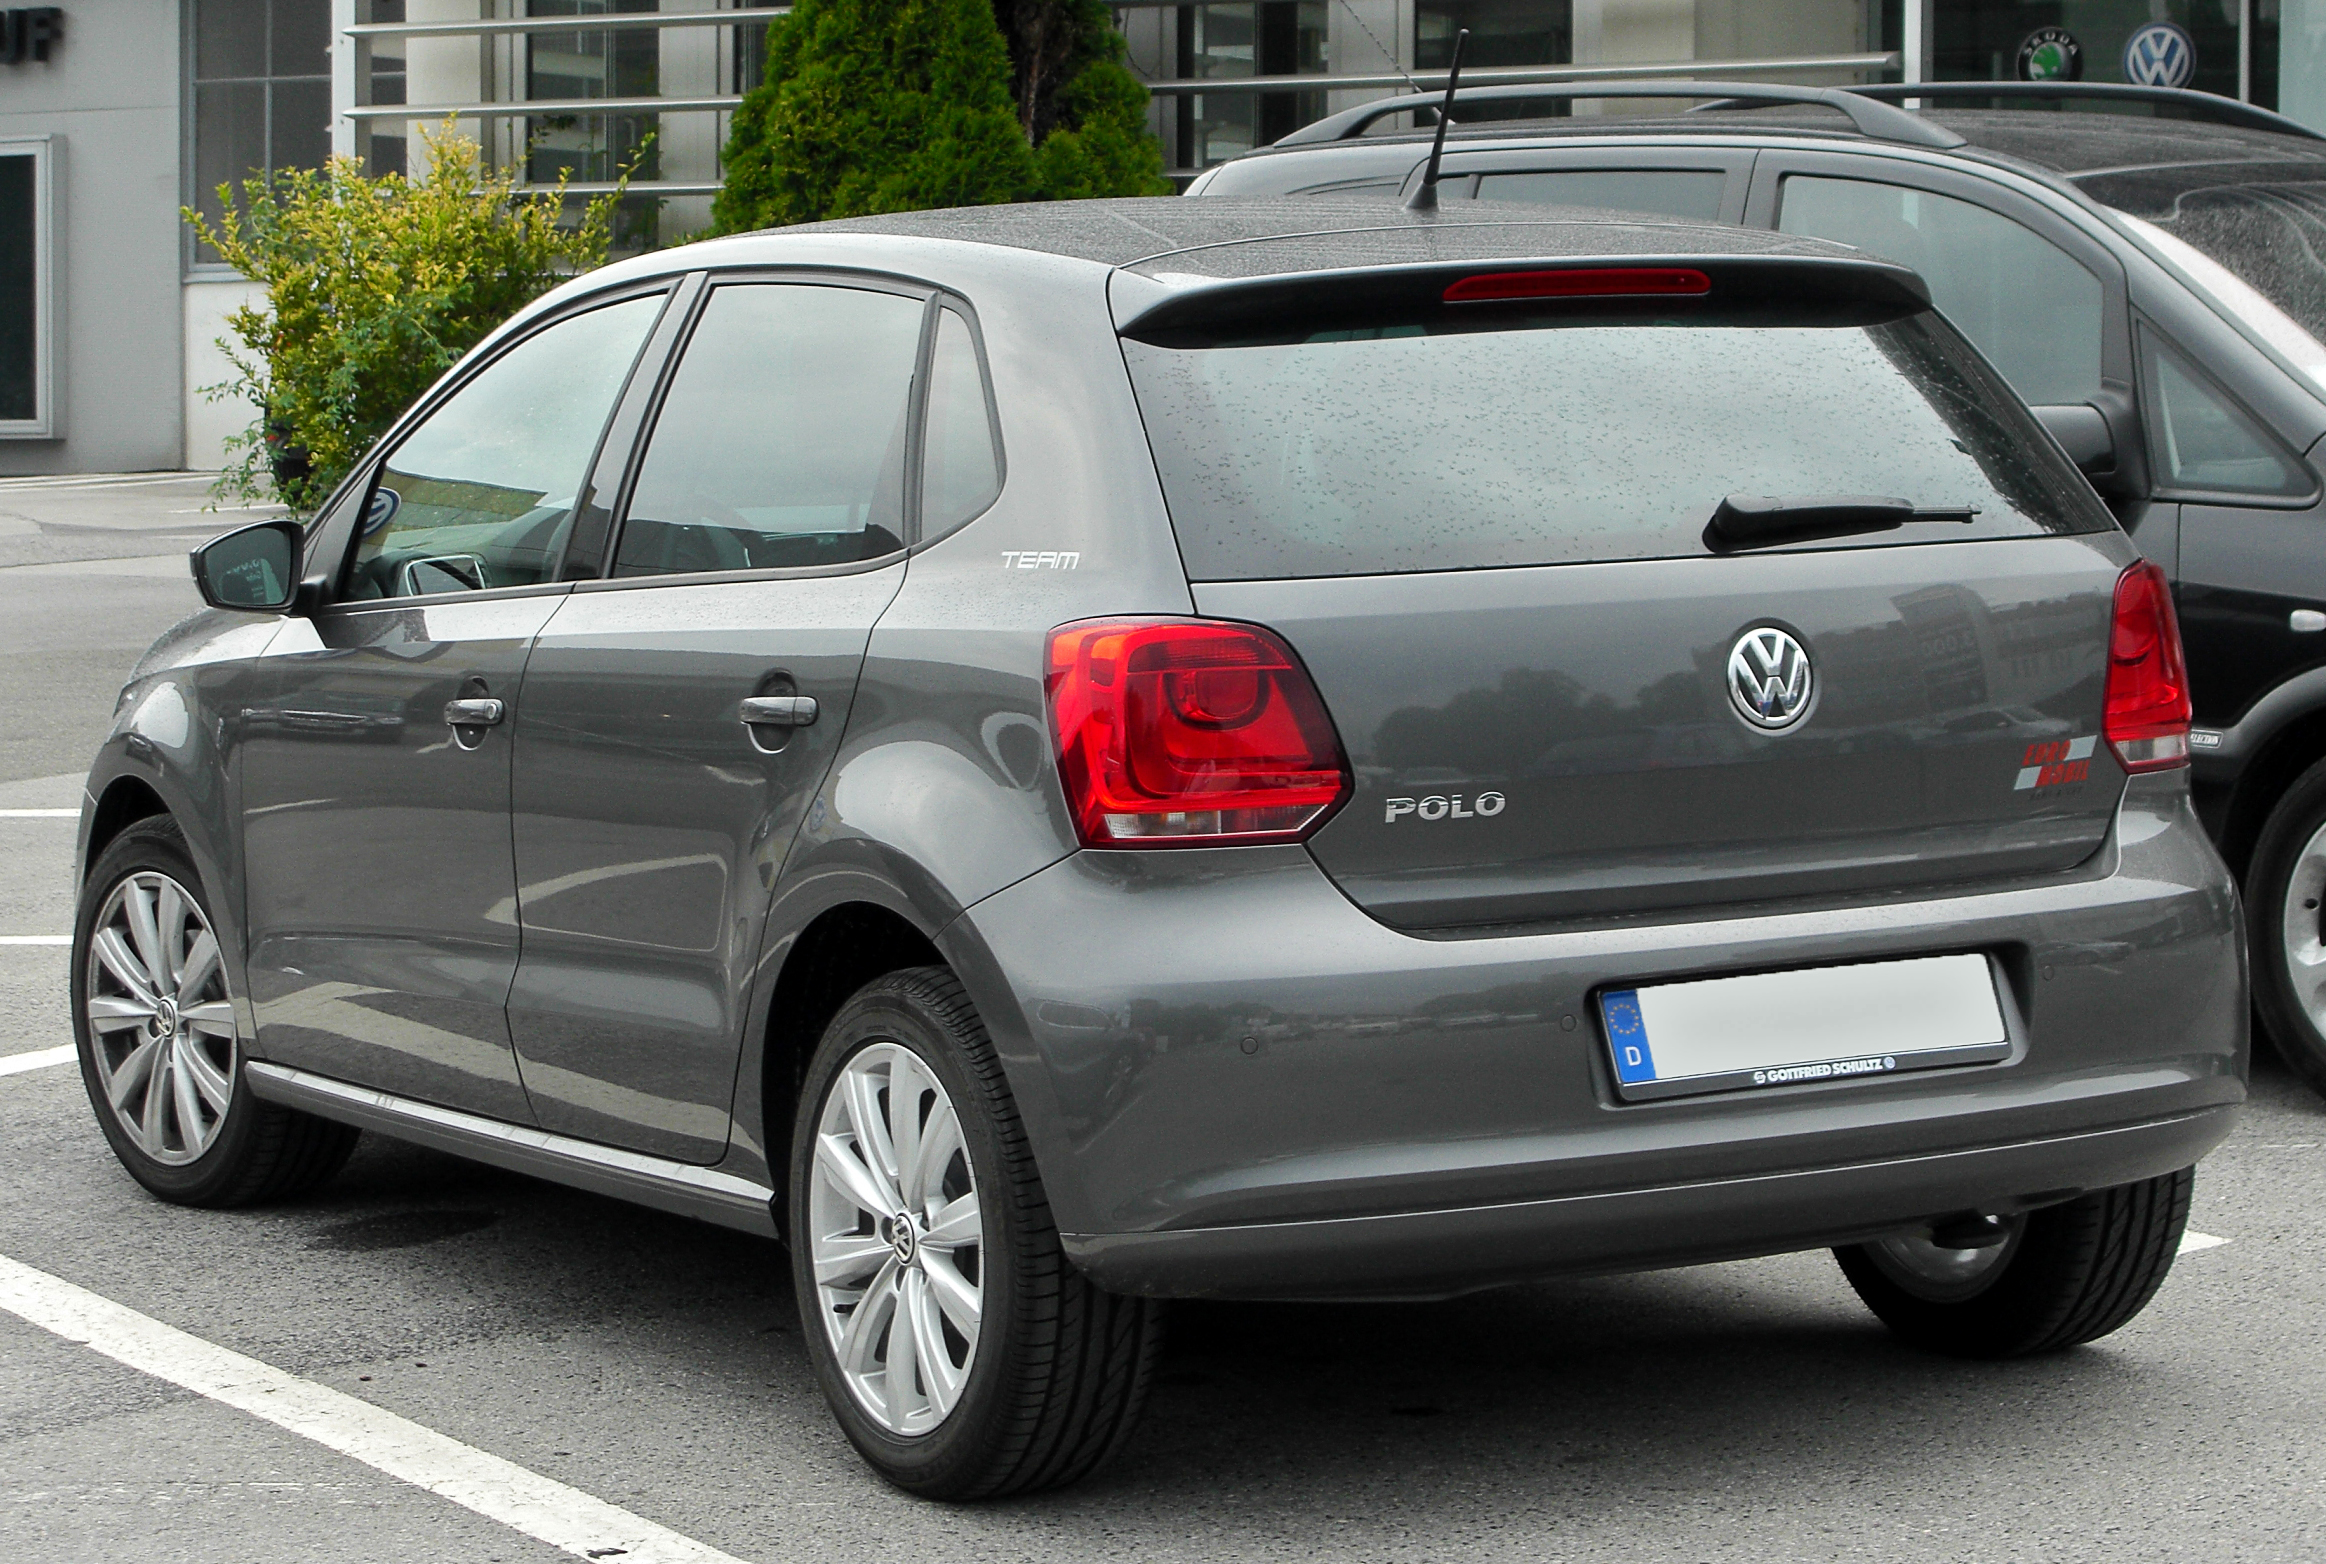 Polo V : file vw polo v team rear ~ Gottalentnigeria.com Avis de Voitures